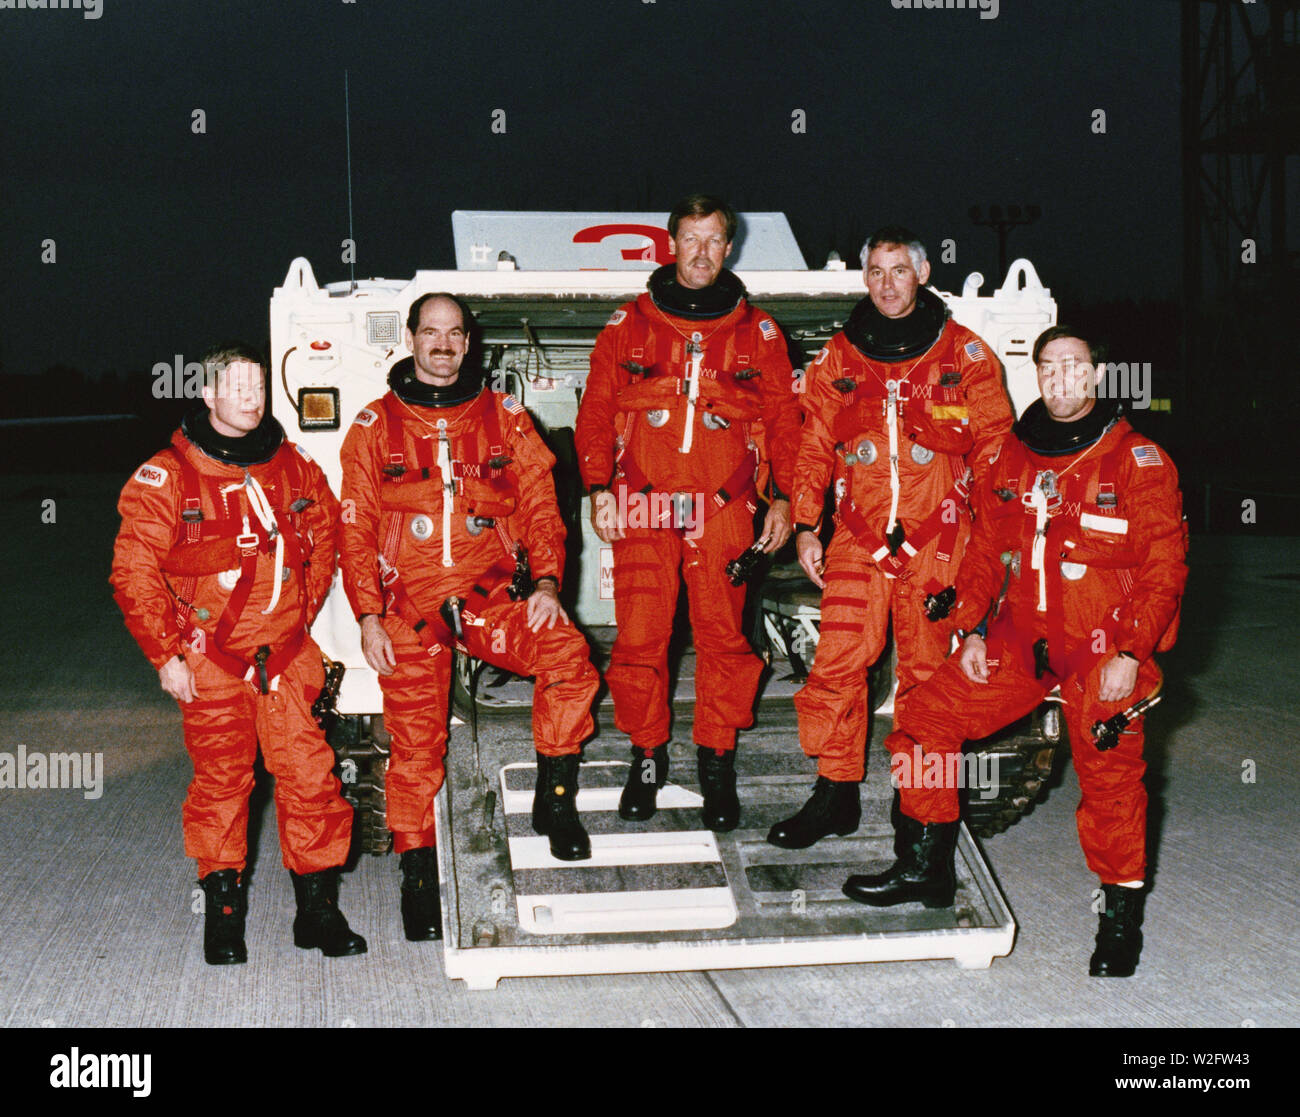 17-nov-1988-sts-27-atlantis-orbiter-vehicle-ov-104-crewmembers-participate-in-the-terminal-countdown-demonstration-test-tcdt-at-the-kennedy-space-center-ksc-standing-in-front-of-the-m113-tracked-rescue-vehicle-armored-personnel-carrier-apc-are-left-to-right-mission-specialist-ms-william-m-shepherd-pilot-guy-s-gardner-commander-robert-l-gibson-ms-richard-m-mullane-and-ms-jerry-l-ross-crewmembers-are-wearing-orange-partial-pressure-or-launch-and-entry-suits-les-W2FW43.jpg